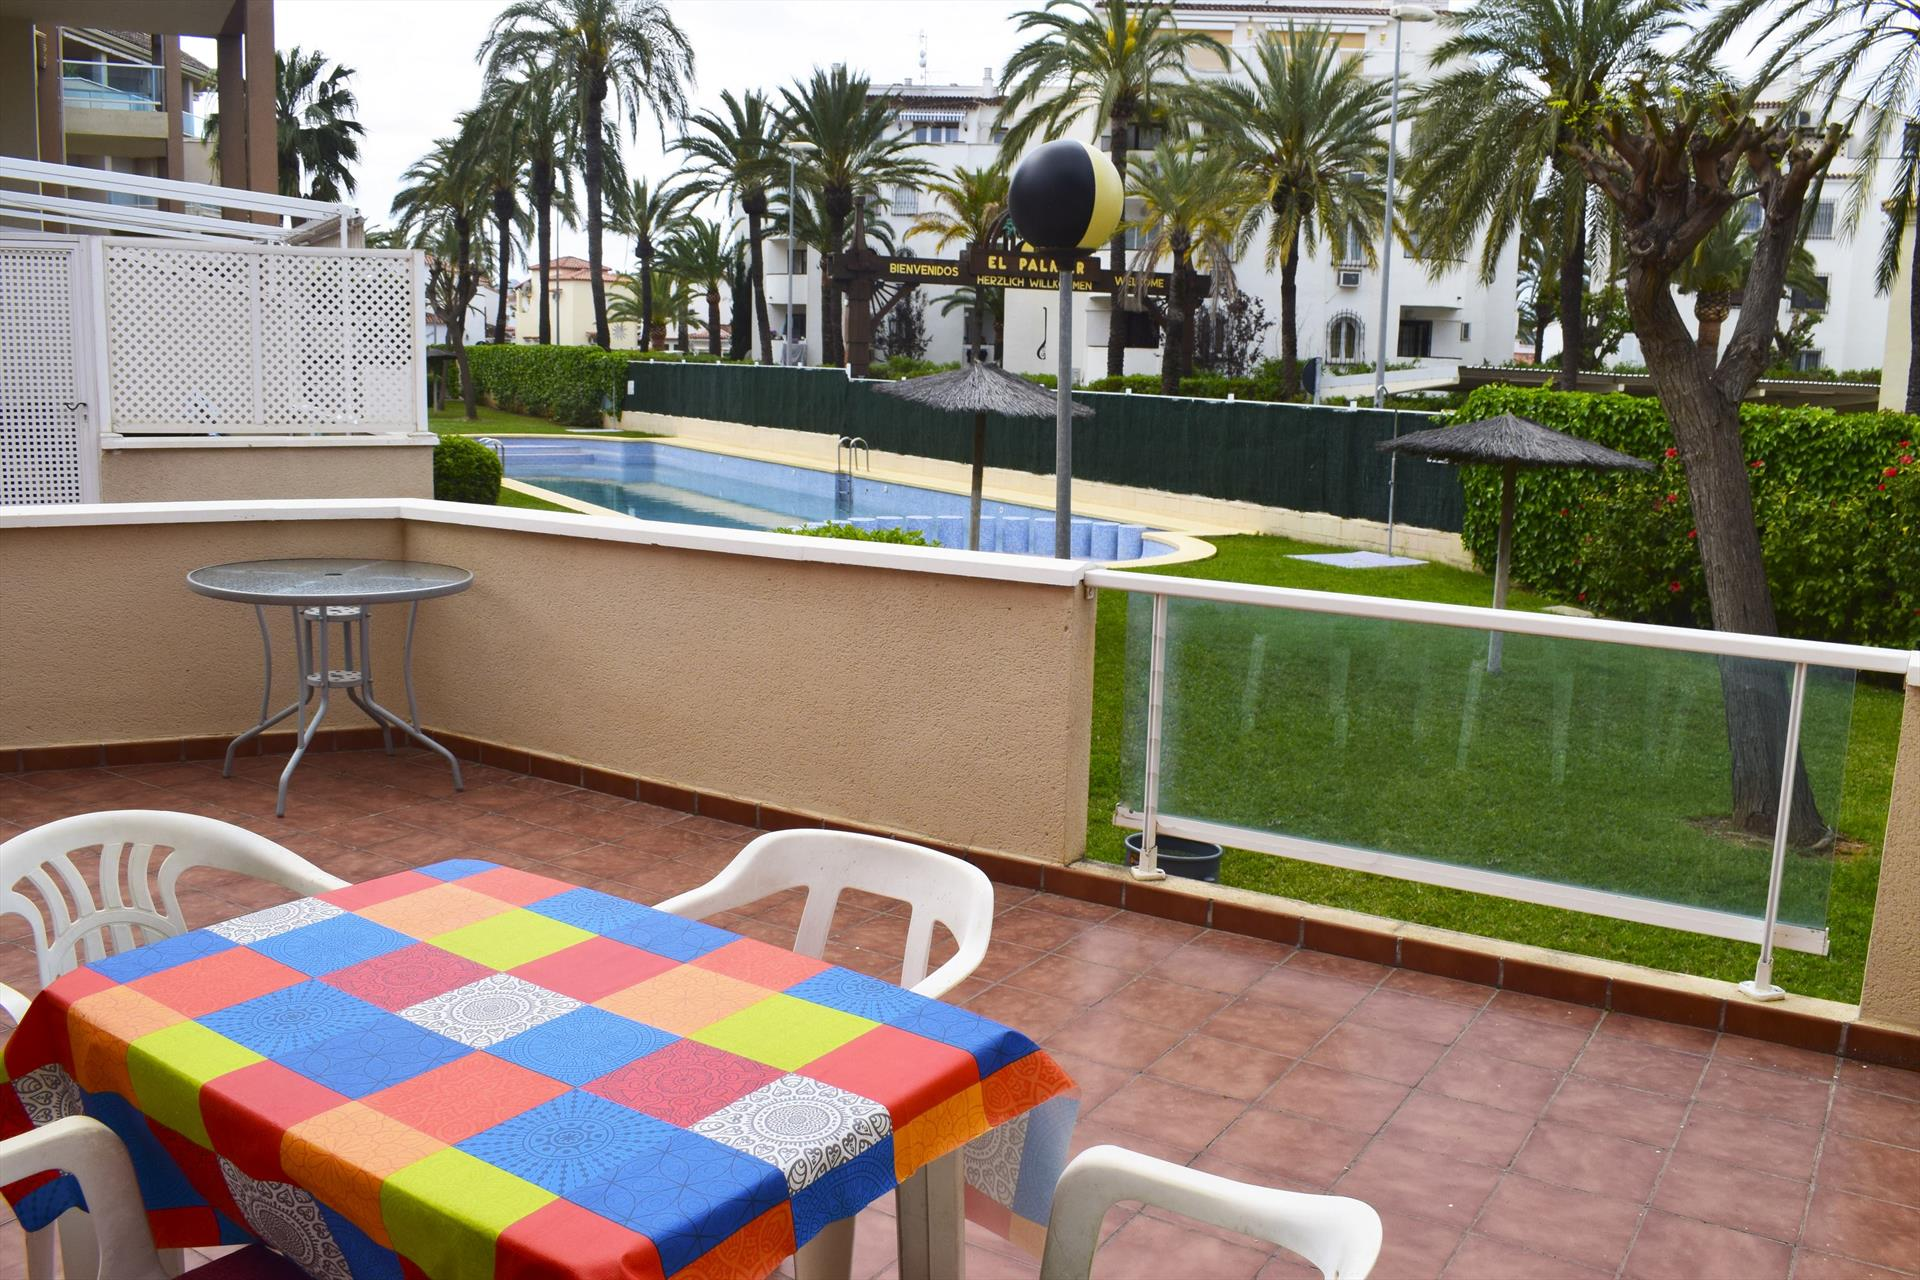 Puerta del Palmar Les Marines PB2204,Wonderful and cheerful apartment in Denia, on the Costa Blanca, Spain  with communal pool for 6 persons.....